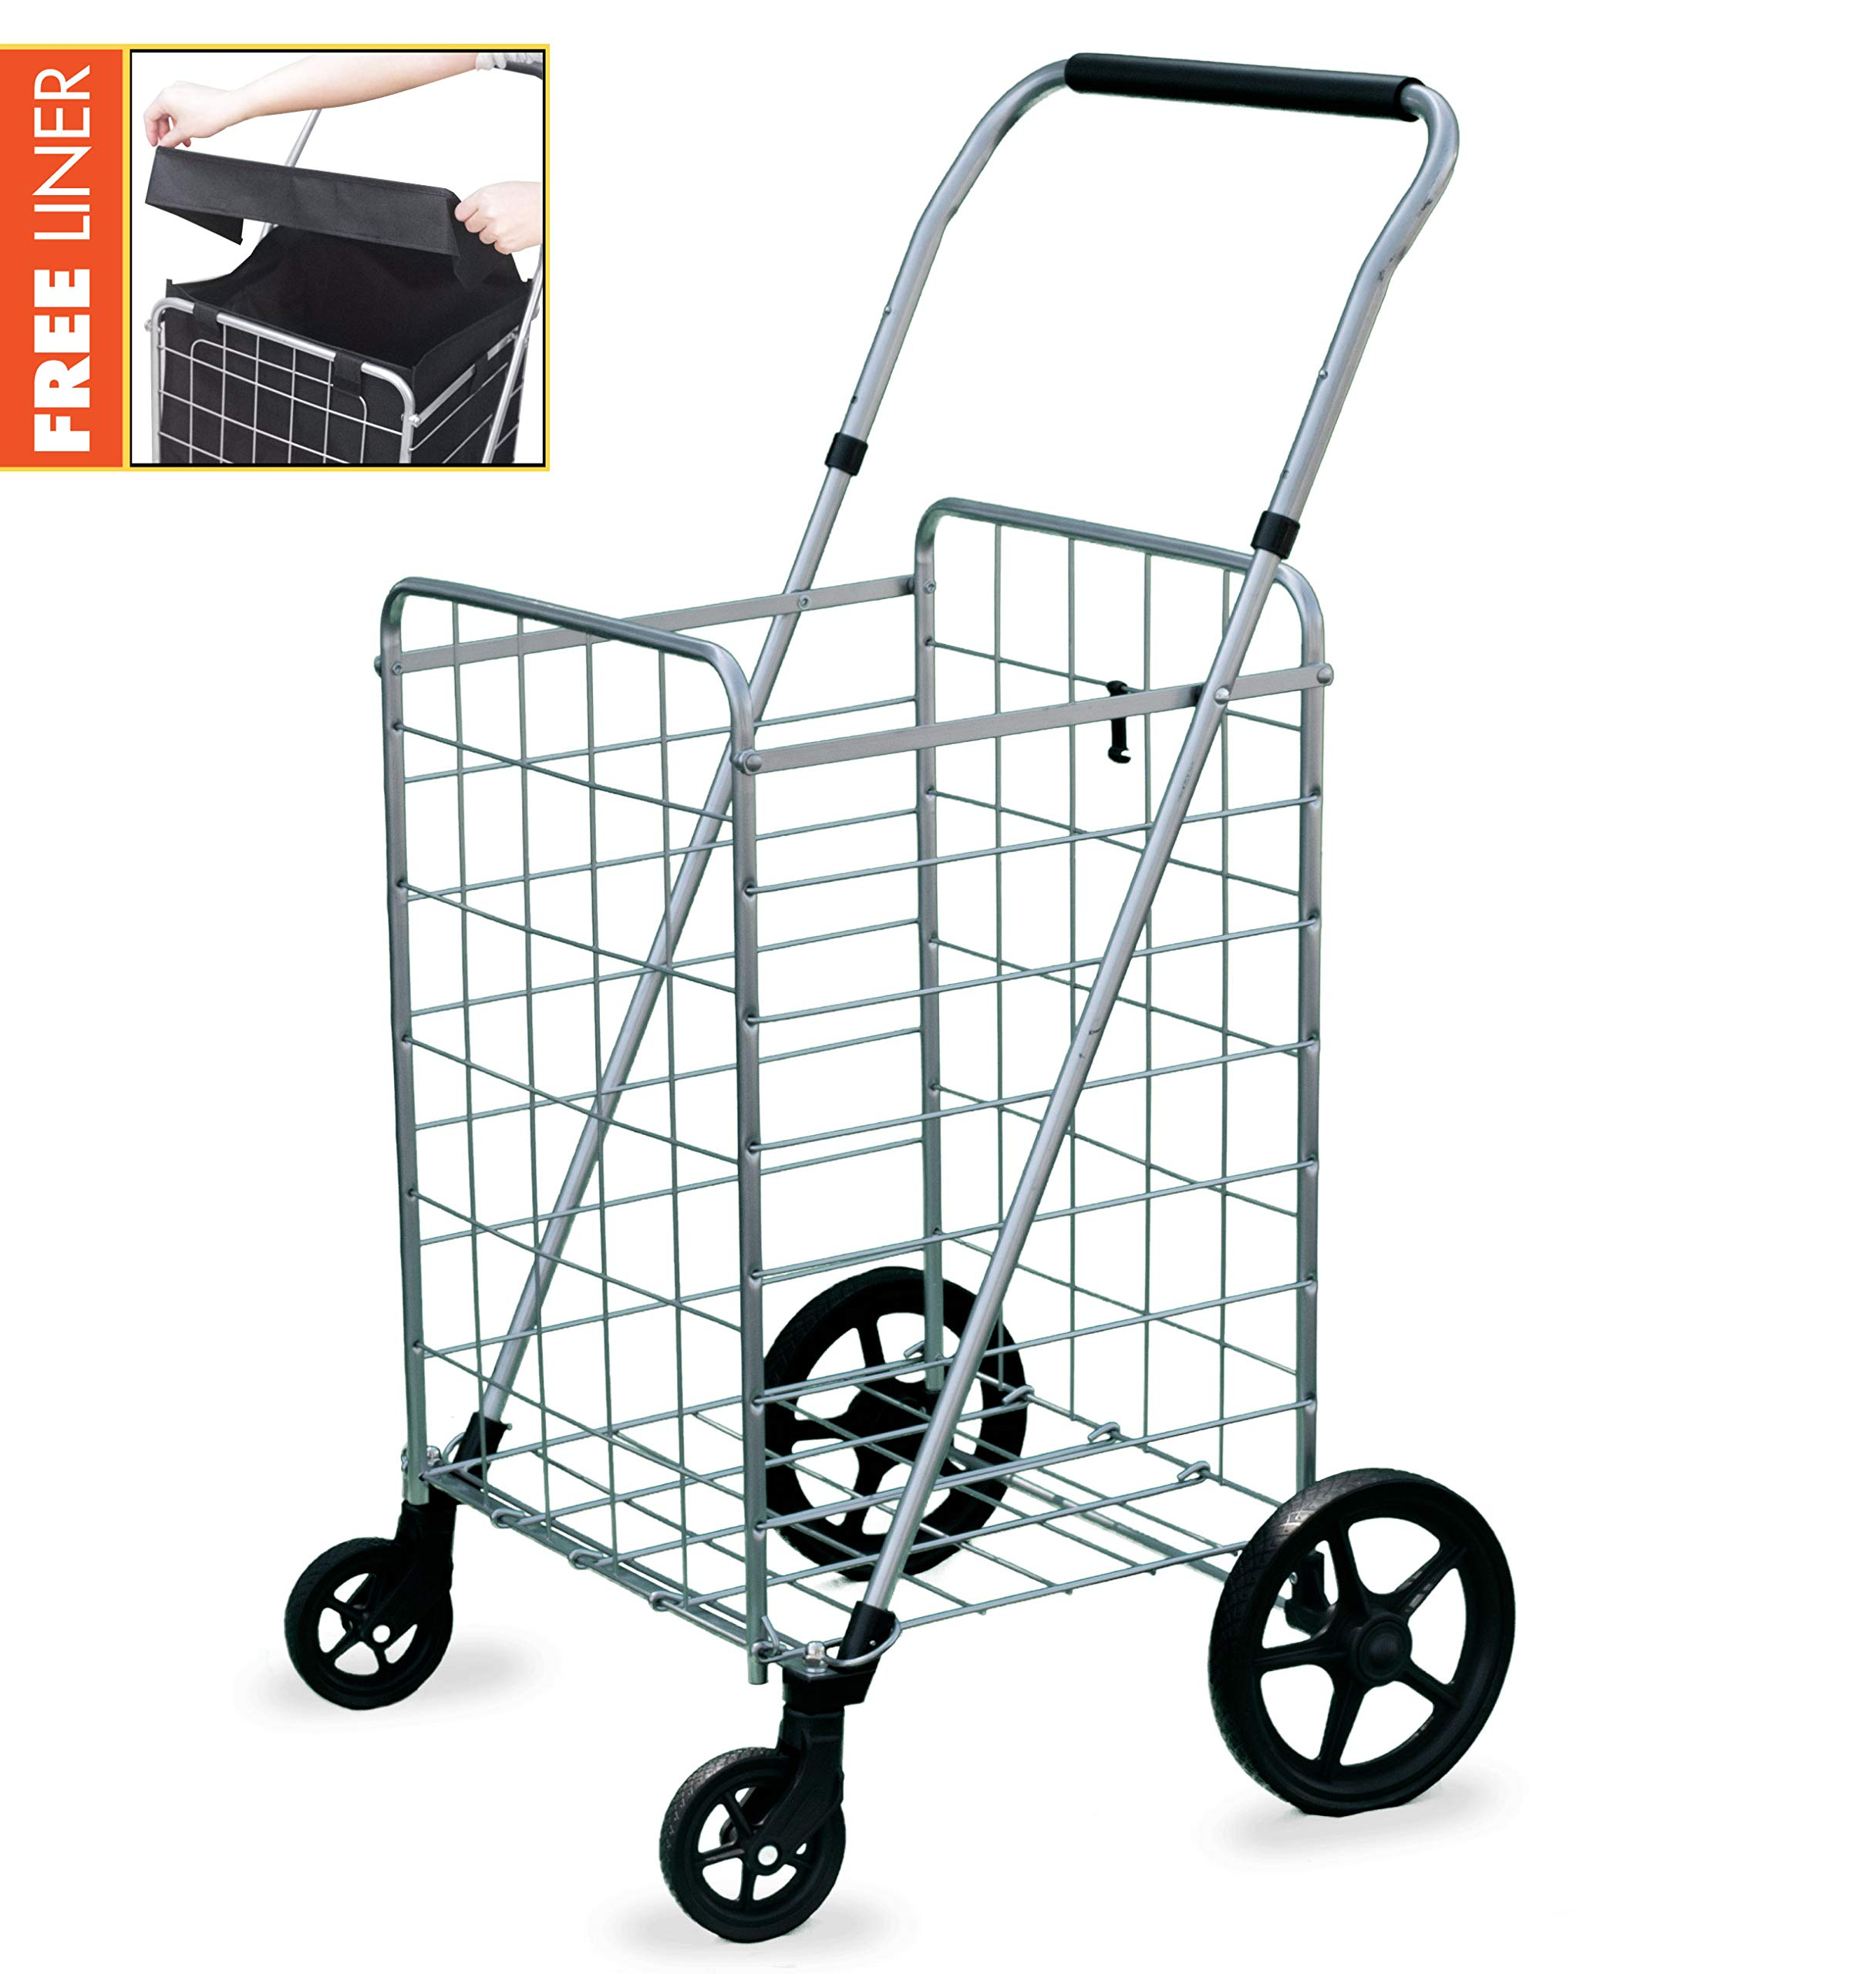 Wellmax Grocery Shopping Cart with Swivel Wheels, Foldable and Collapsible Utility Cart with Adjustable Height Handle, Heavy Duty Light Weight Trolley by Wellmax